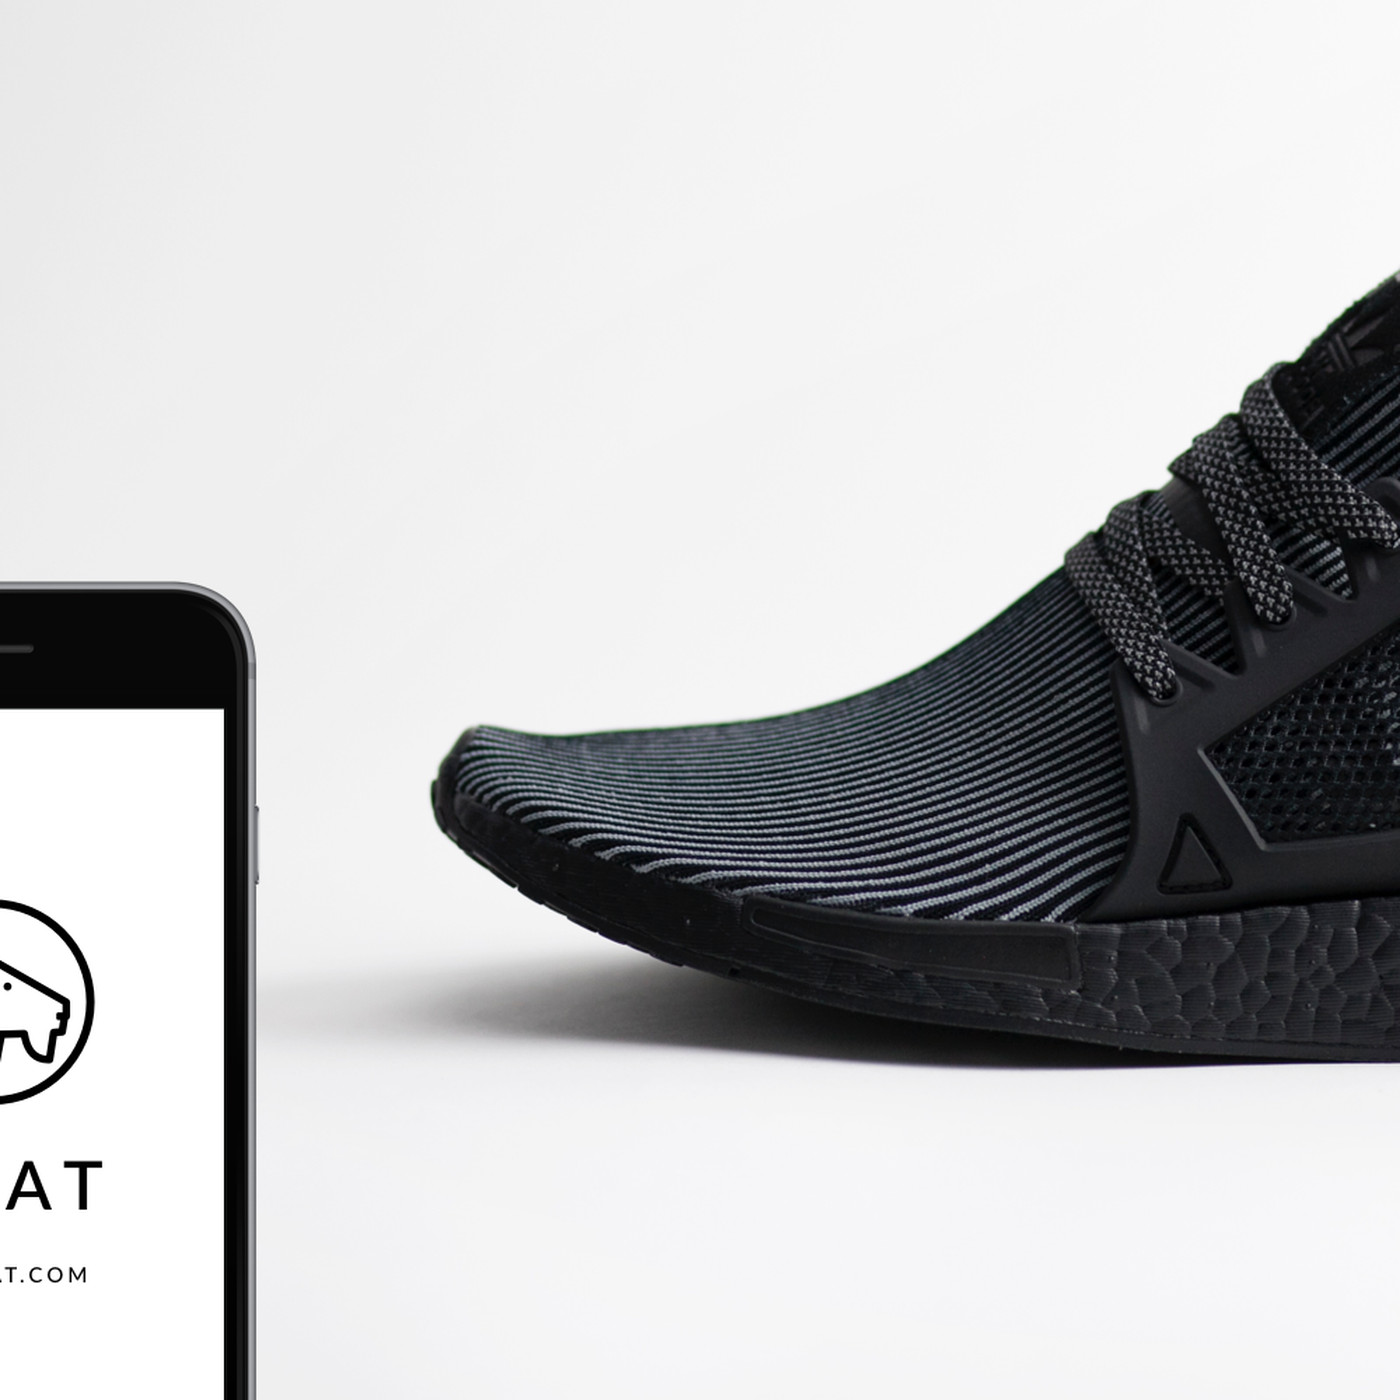 GOAT Is A Sneaker App That Should Be Dead But Is Making Millions - Create my own invoice shoe stores online